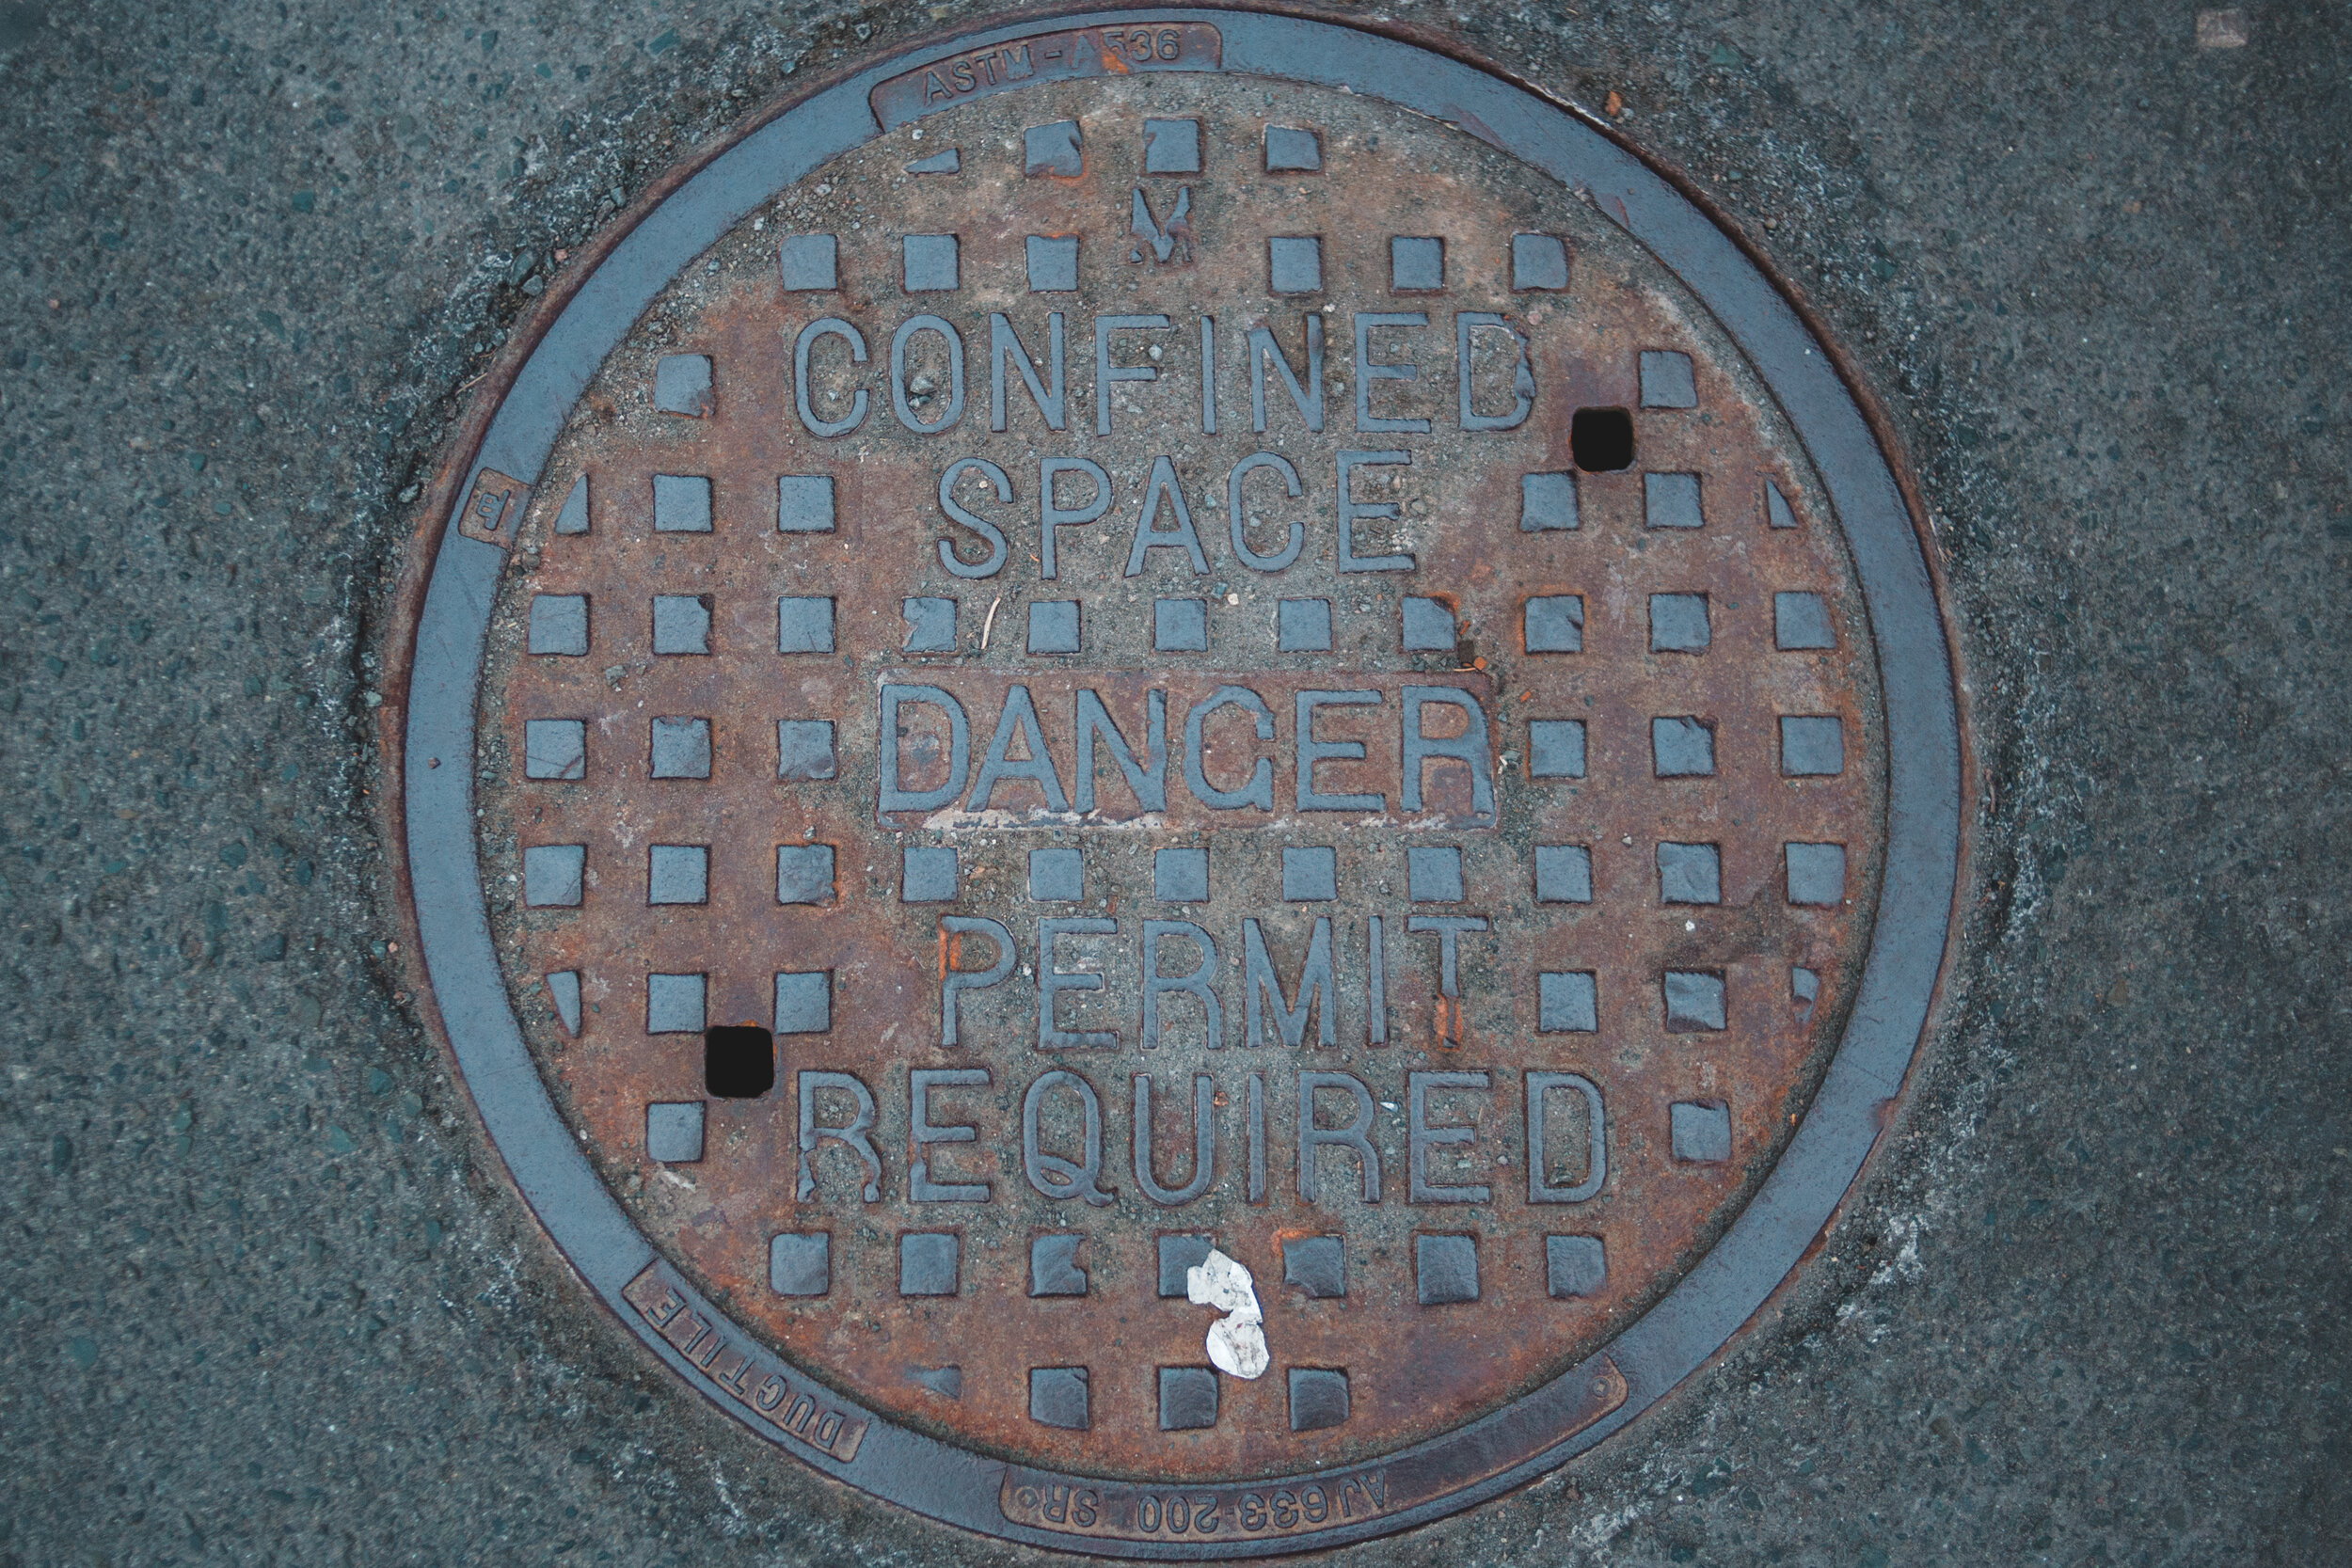 Sewer Inspections - We are proud to offer sewer inspections with top notch service & uncompromising integrity.175.00